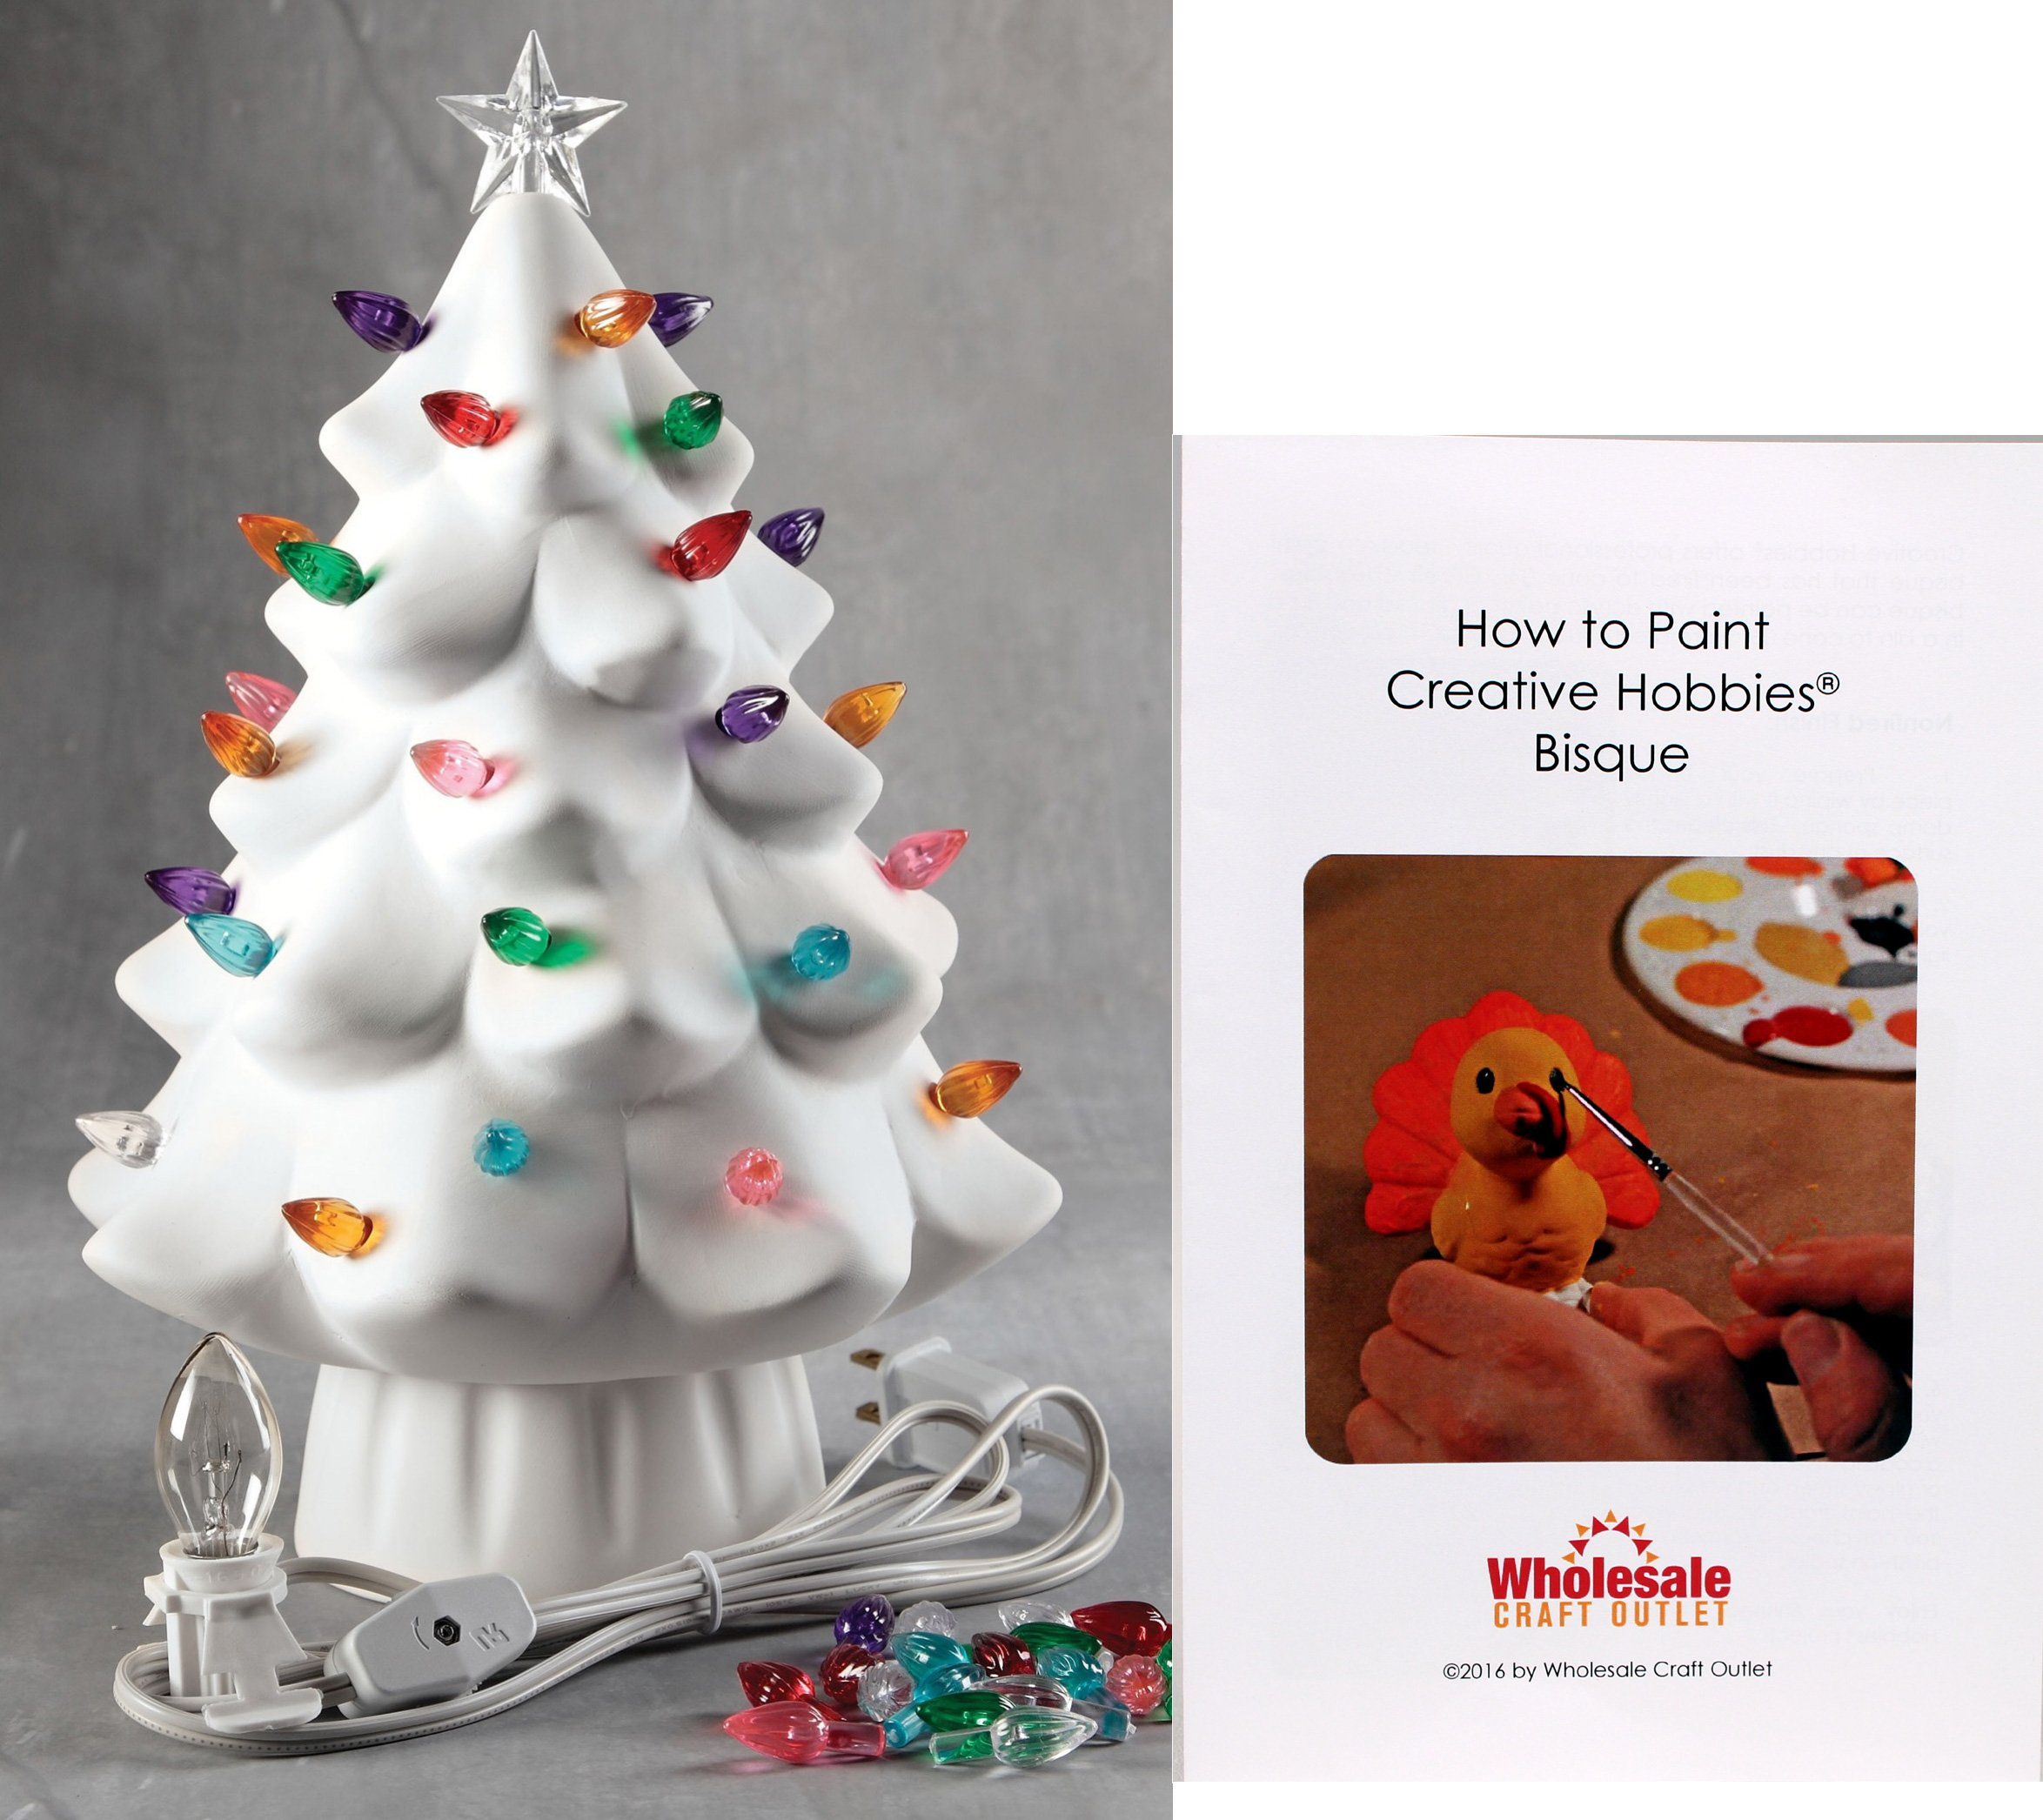 Creative Hobbies 11 Inch Tall Ceramic Bisque Light Up Christmas Tree, Ready To Paint, Includes Electrical Cord, Bulb, Twist Lites, Star, How To Paint Ceramic Booklet.